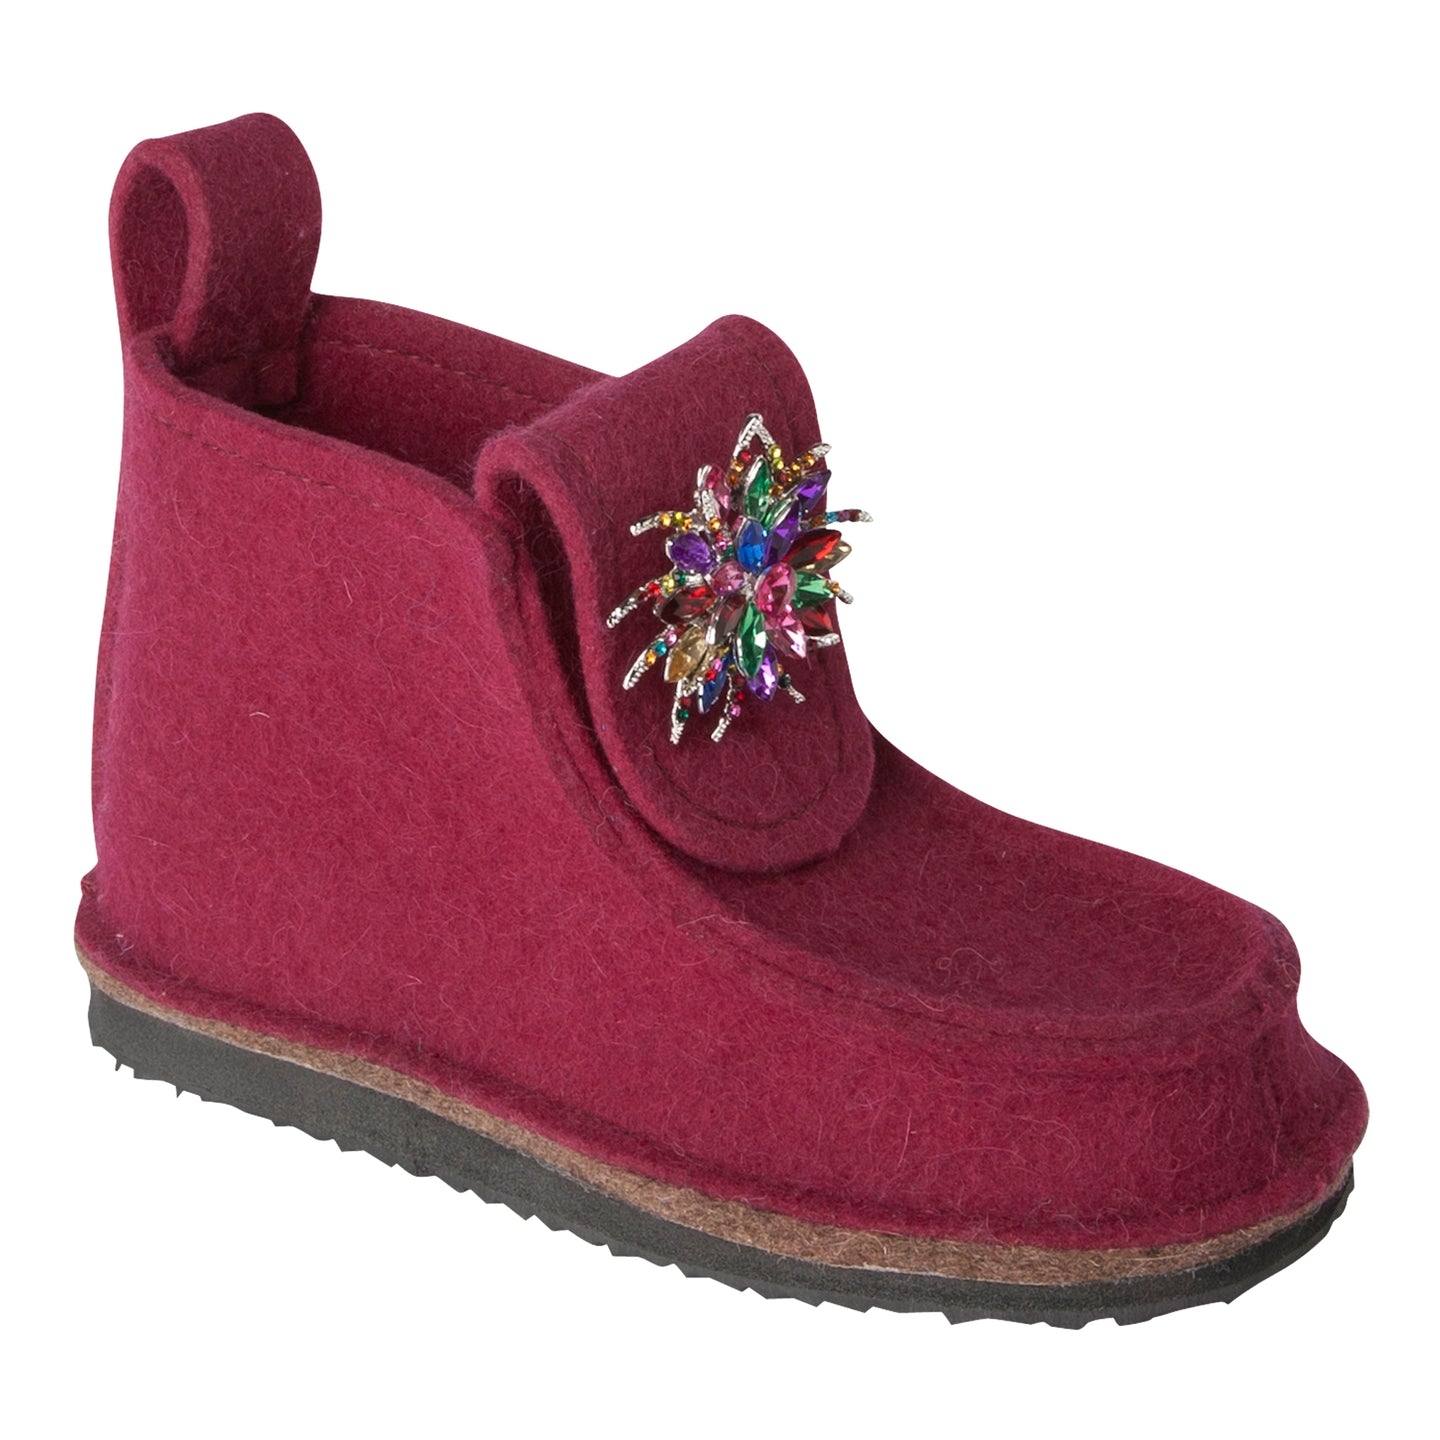 Embellished Flower Boot